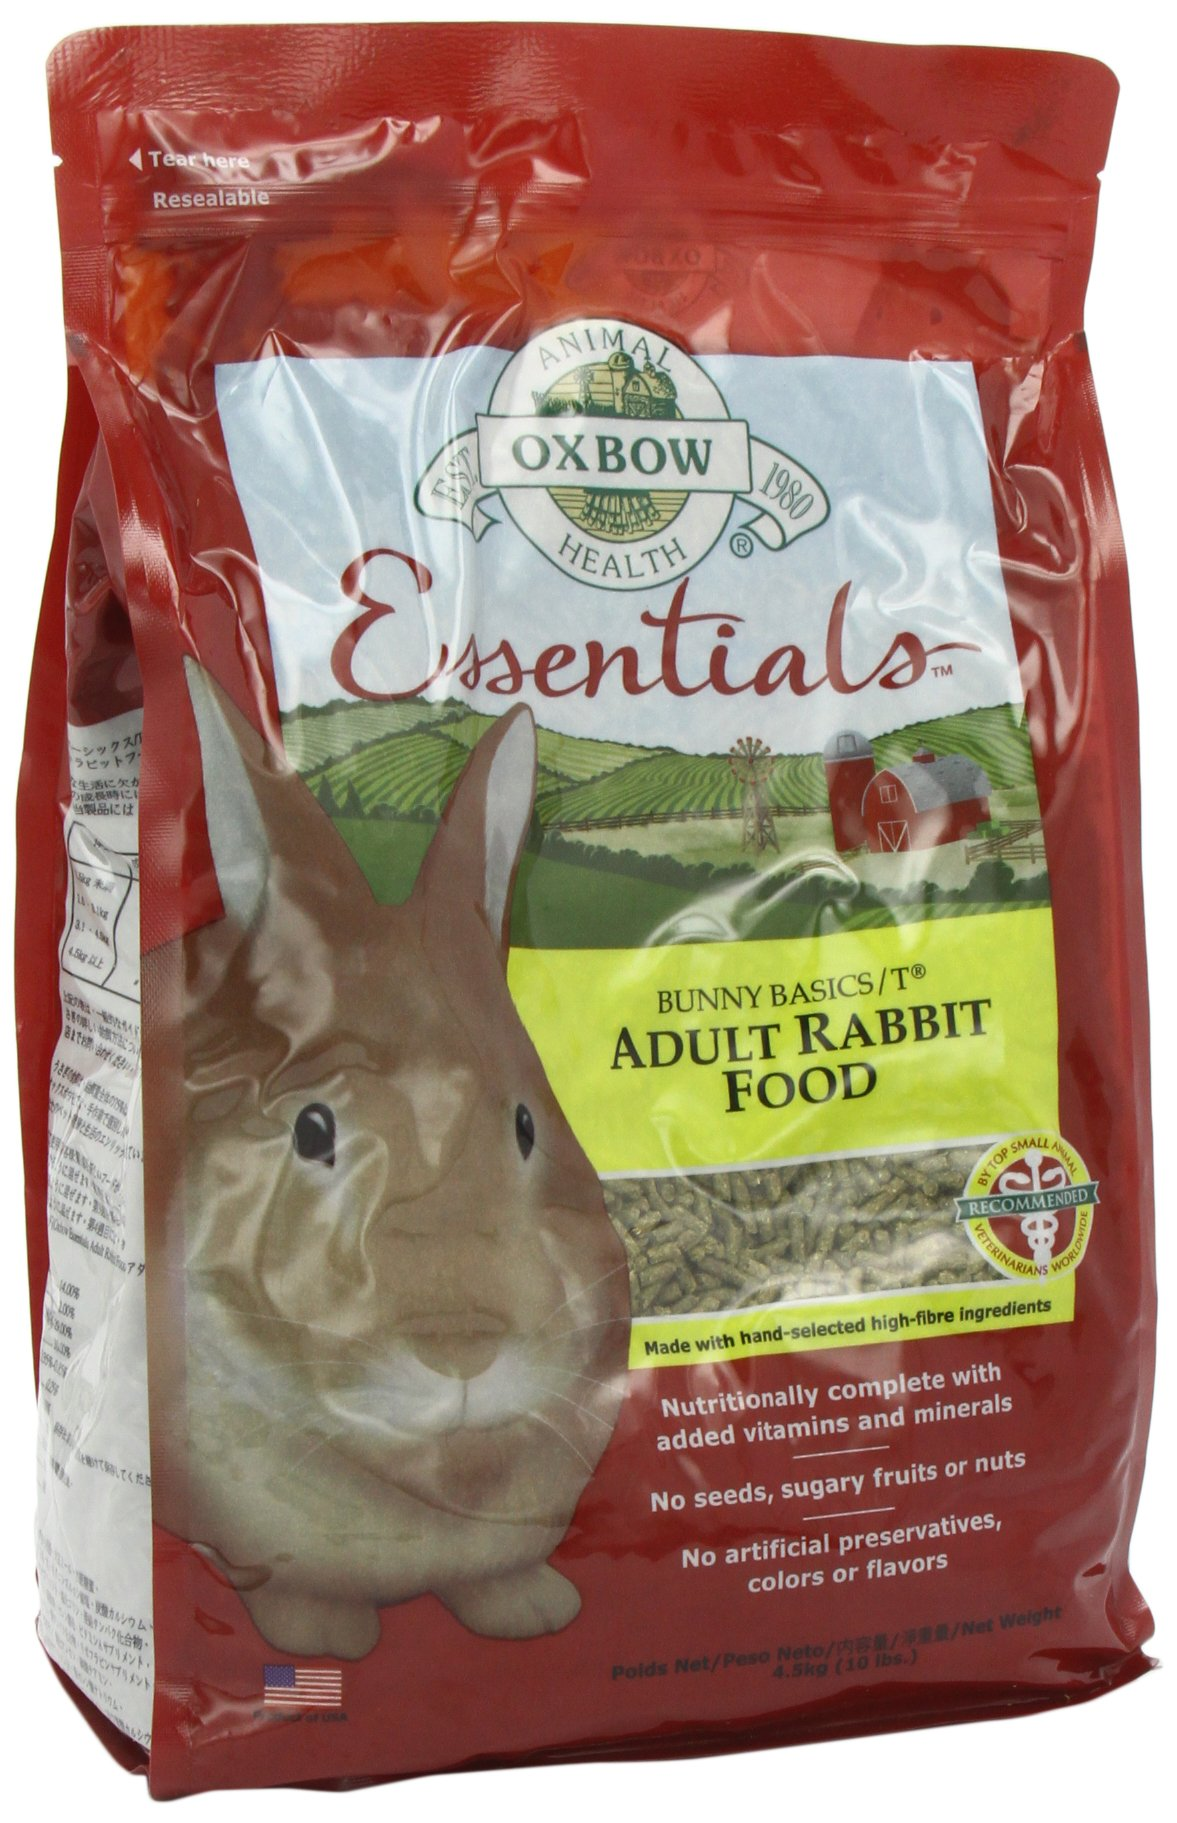 Petlife Oxbow Bunny Basics T Complete Feed for Adult Rabbit, 4.5 Kg